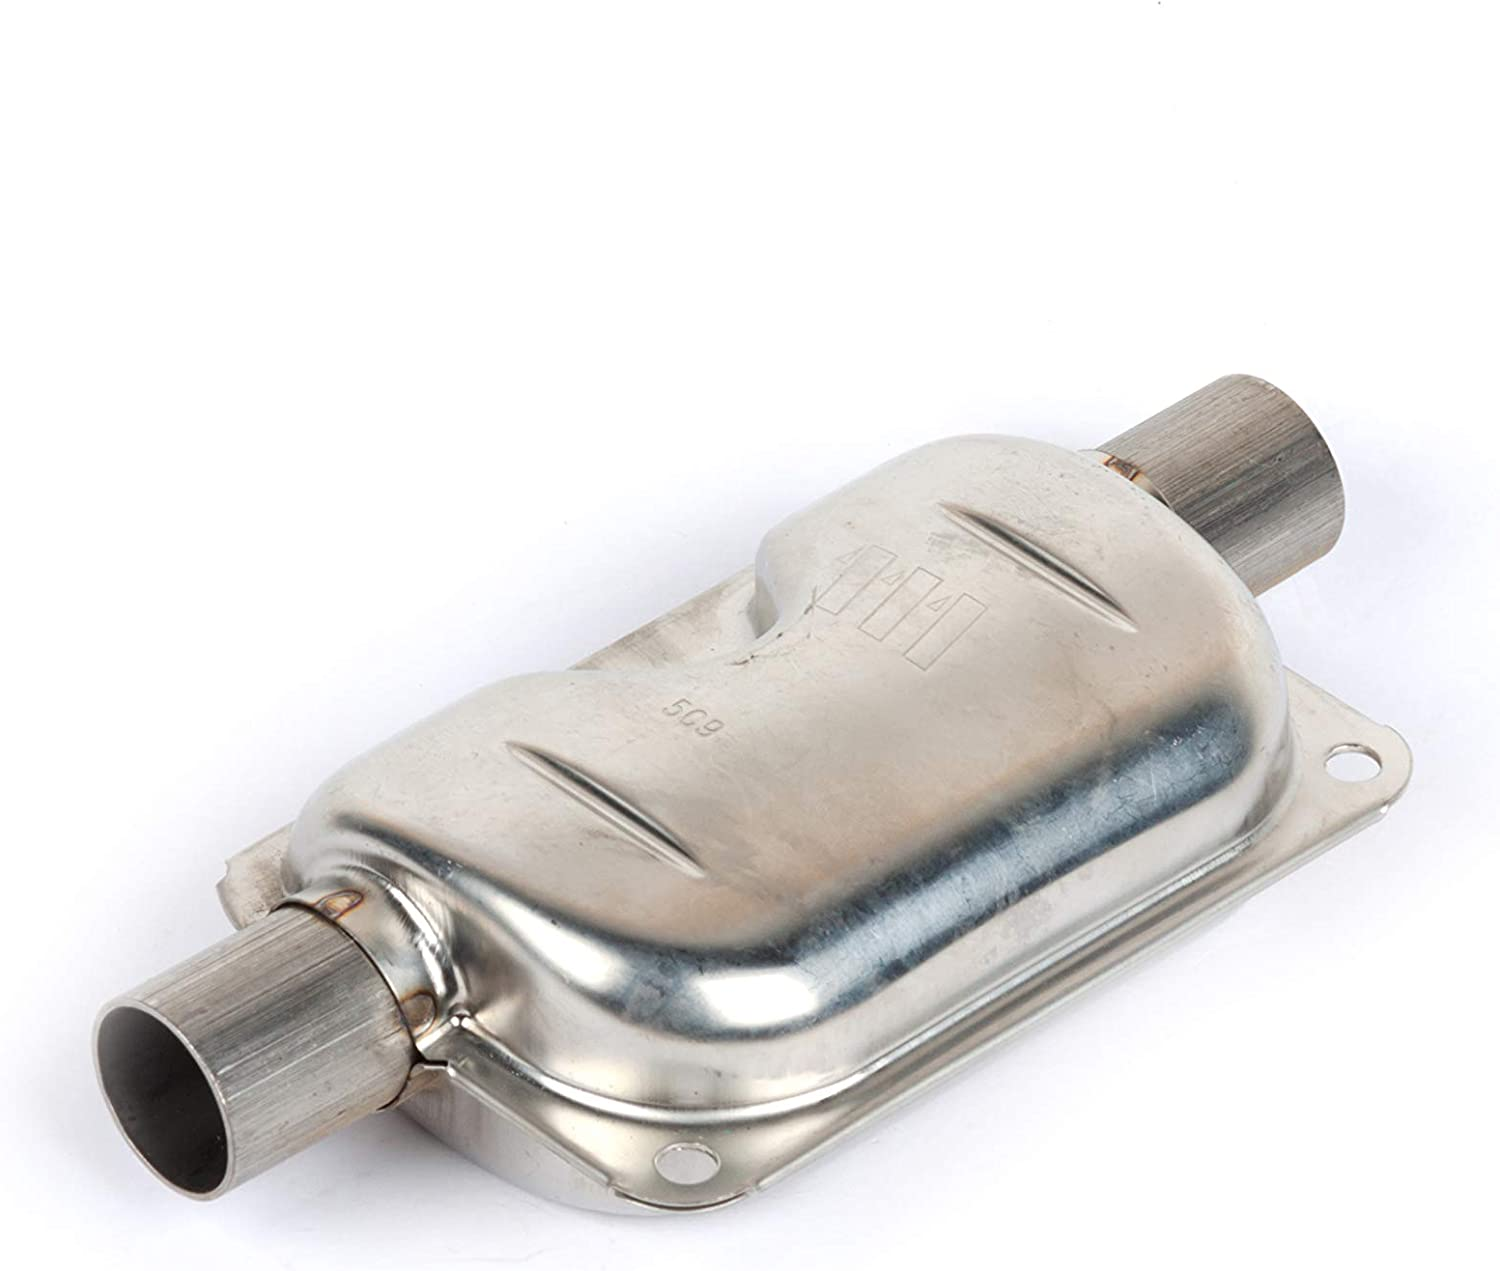 Details about  /Espar Eberspacher  Exhaust D2 D4 D5 Pipe 24mm 51'' Inch Long With Tip And Clamp